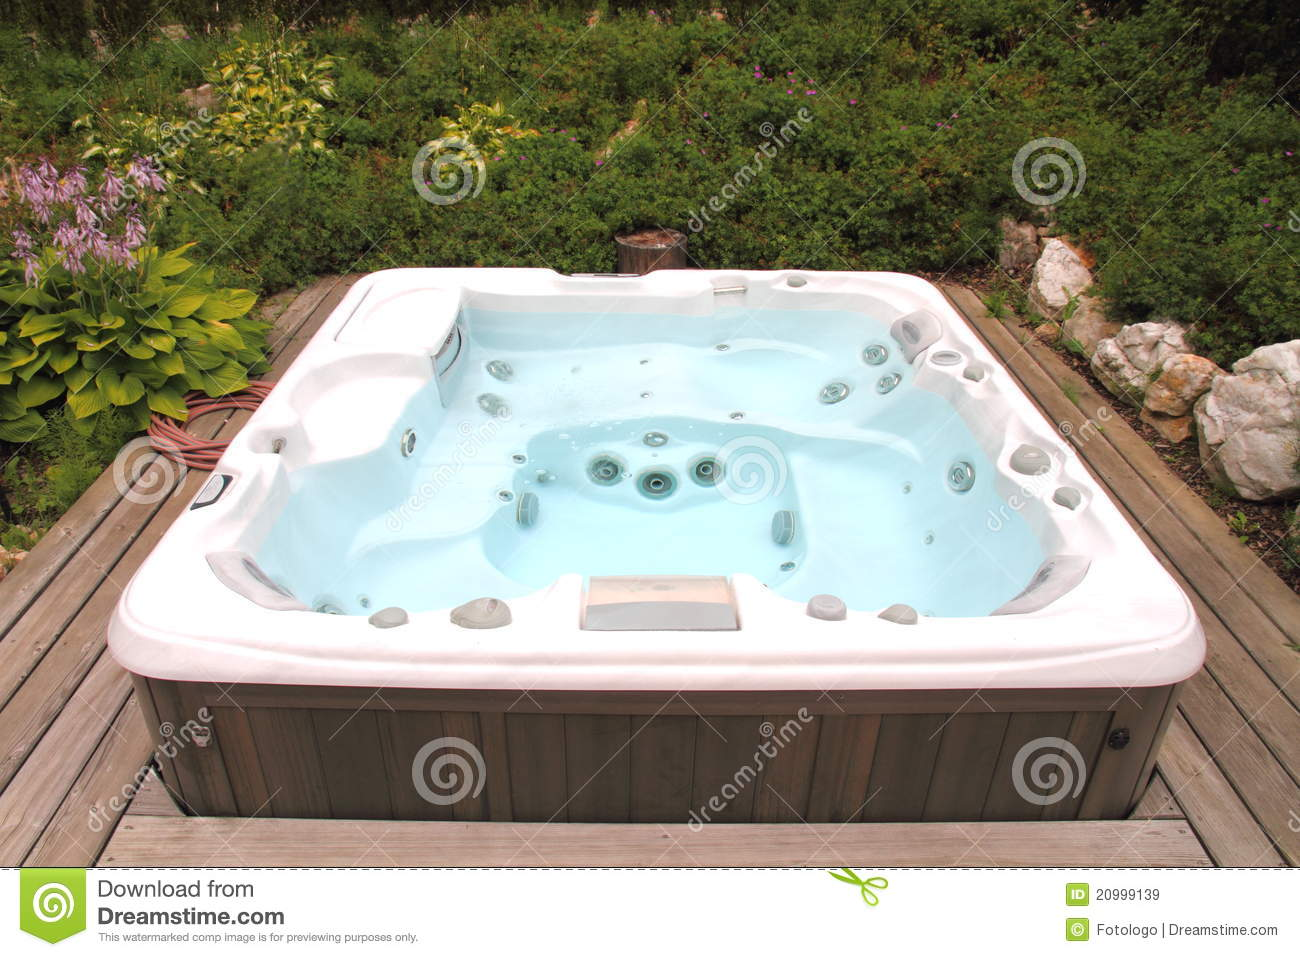 Free Hot Tub Plans submited images.